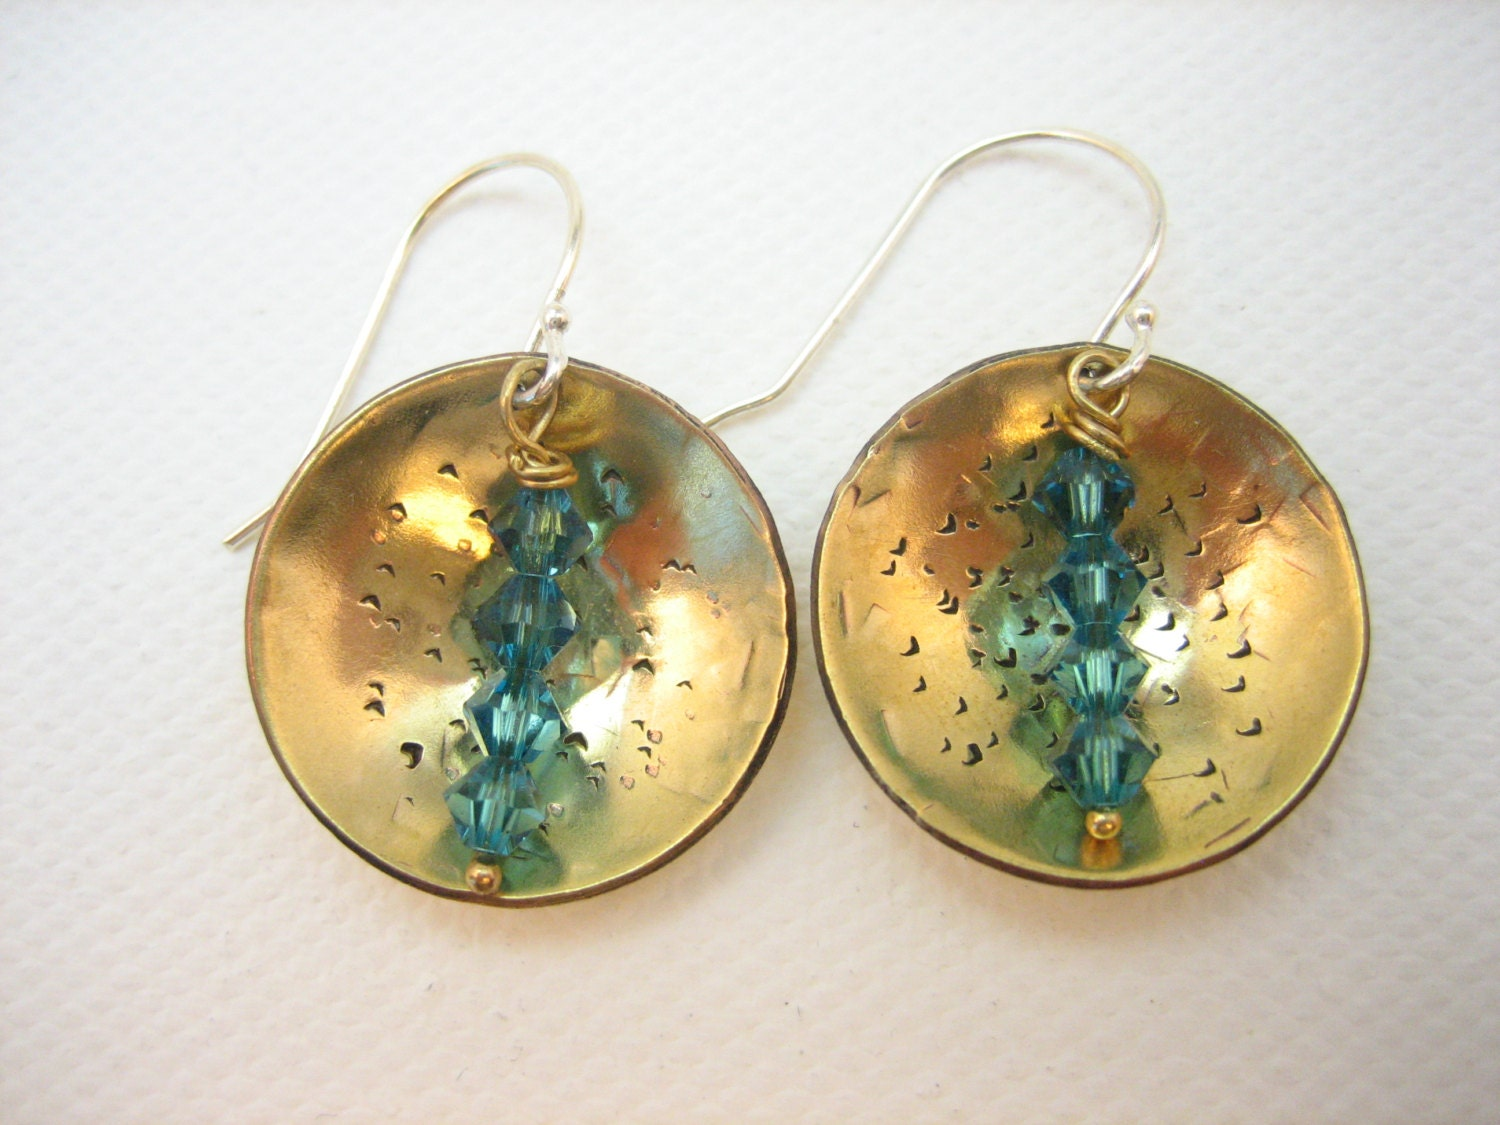 Golden hammered and textured metal earrings with turquoise Swarovski crystals, handmade artisan hammered brass earrings, hammered brass